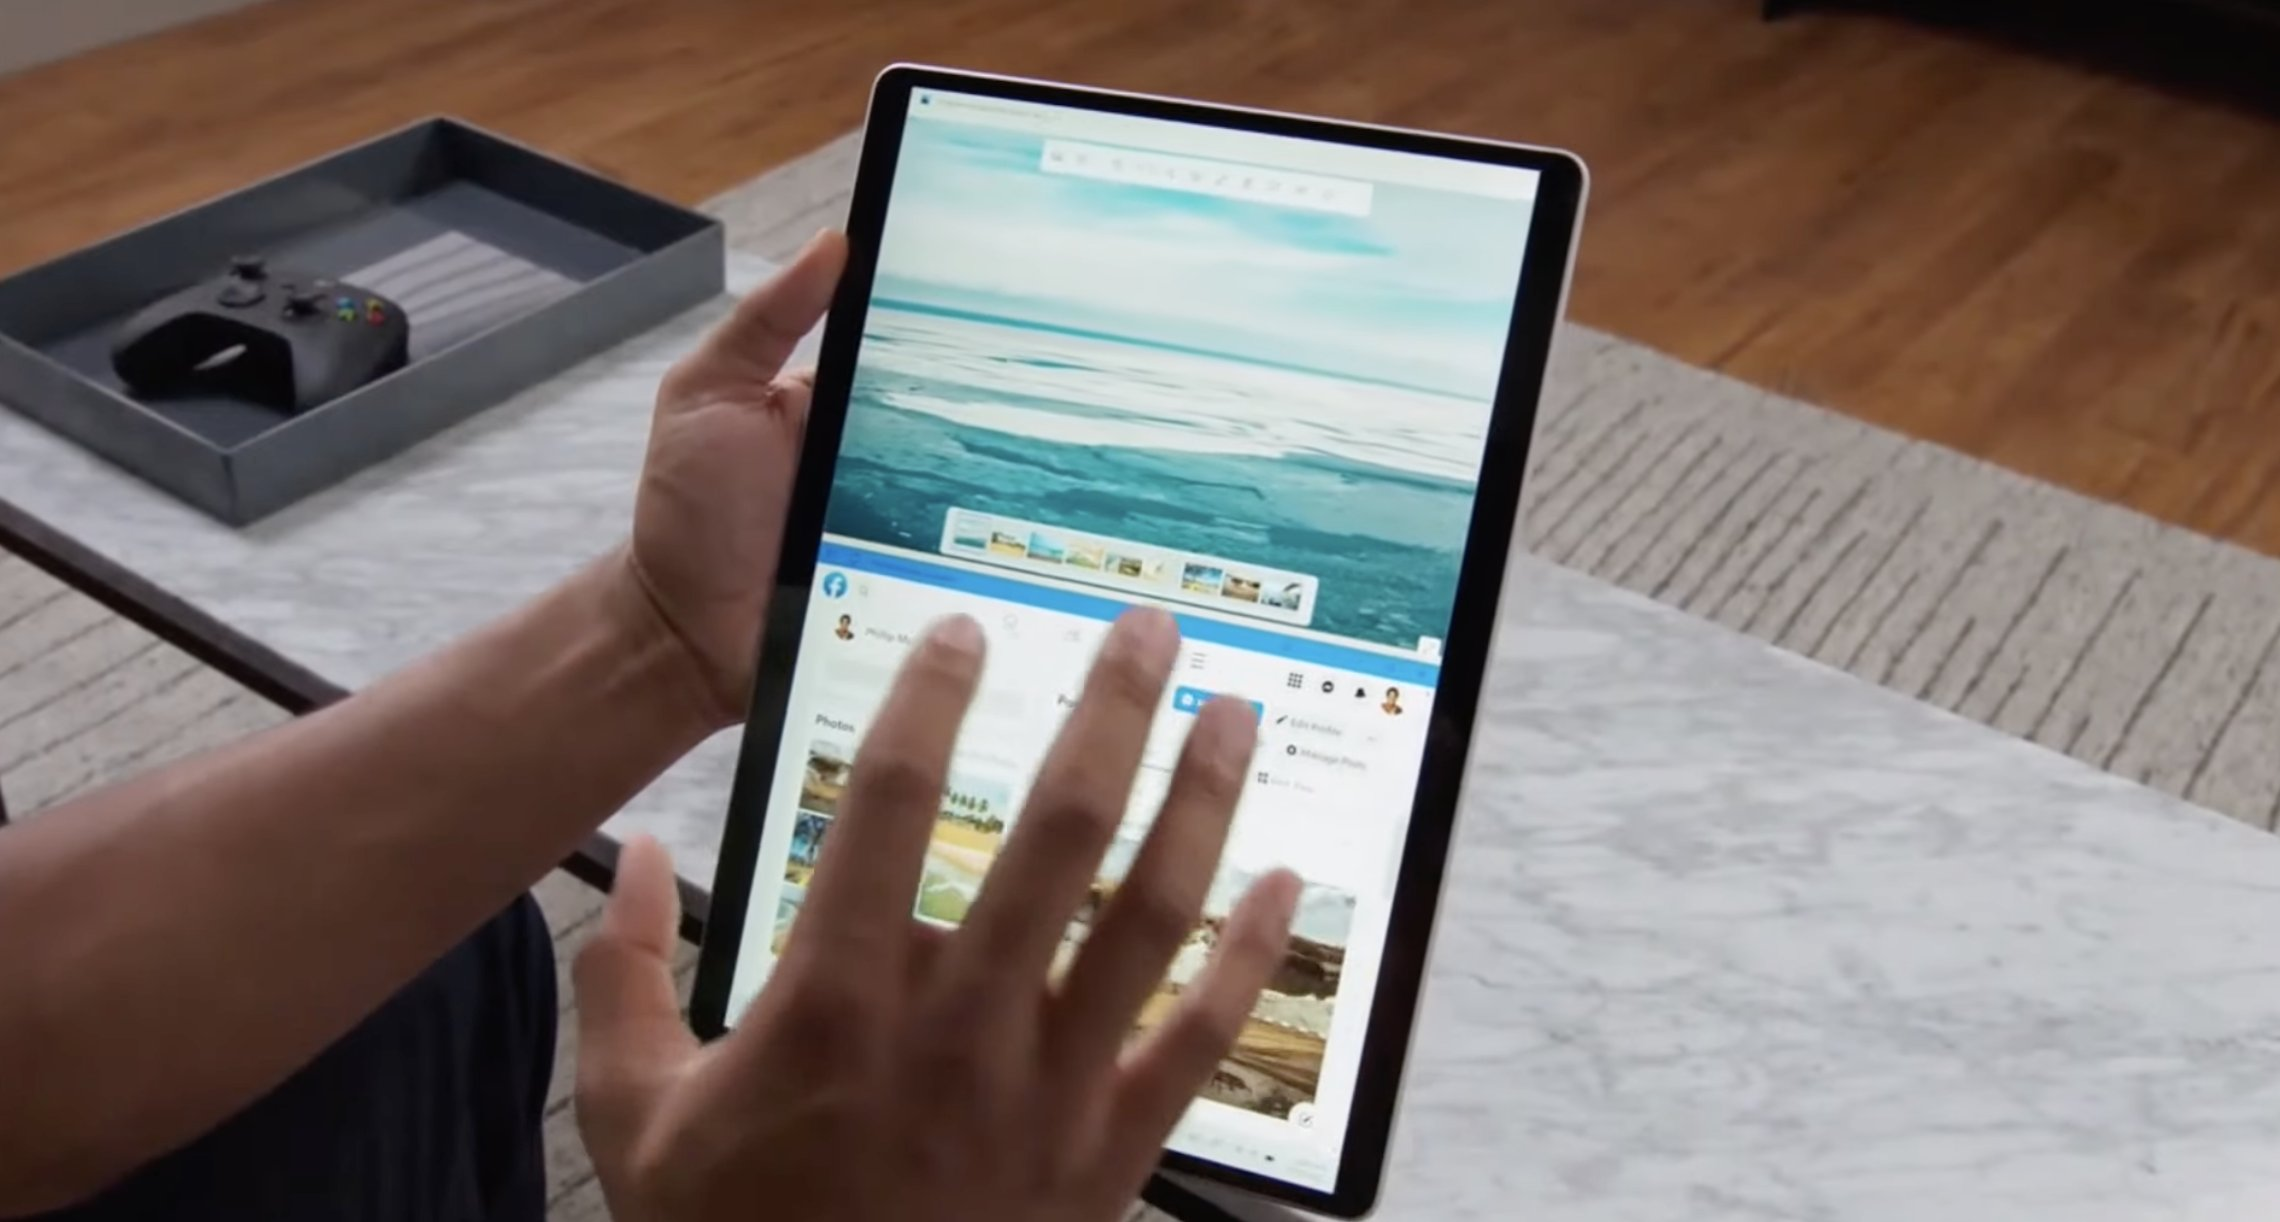 Touch experience on Windows 11